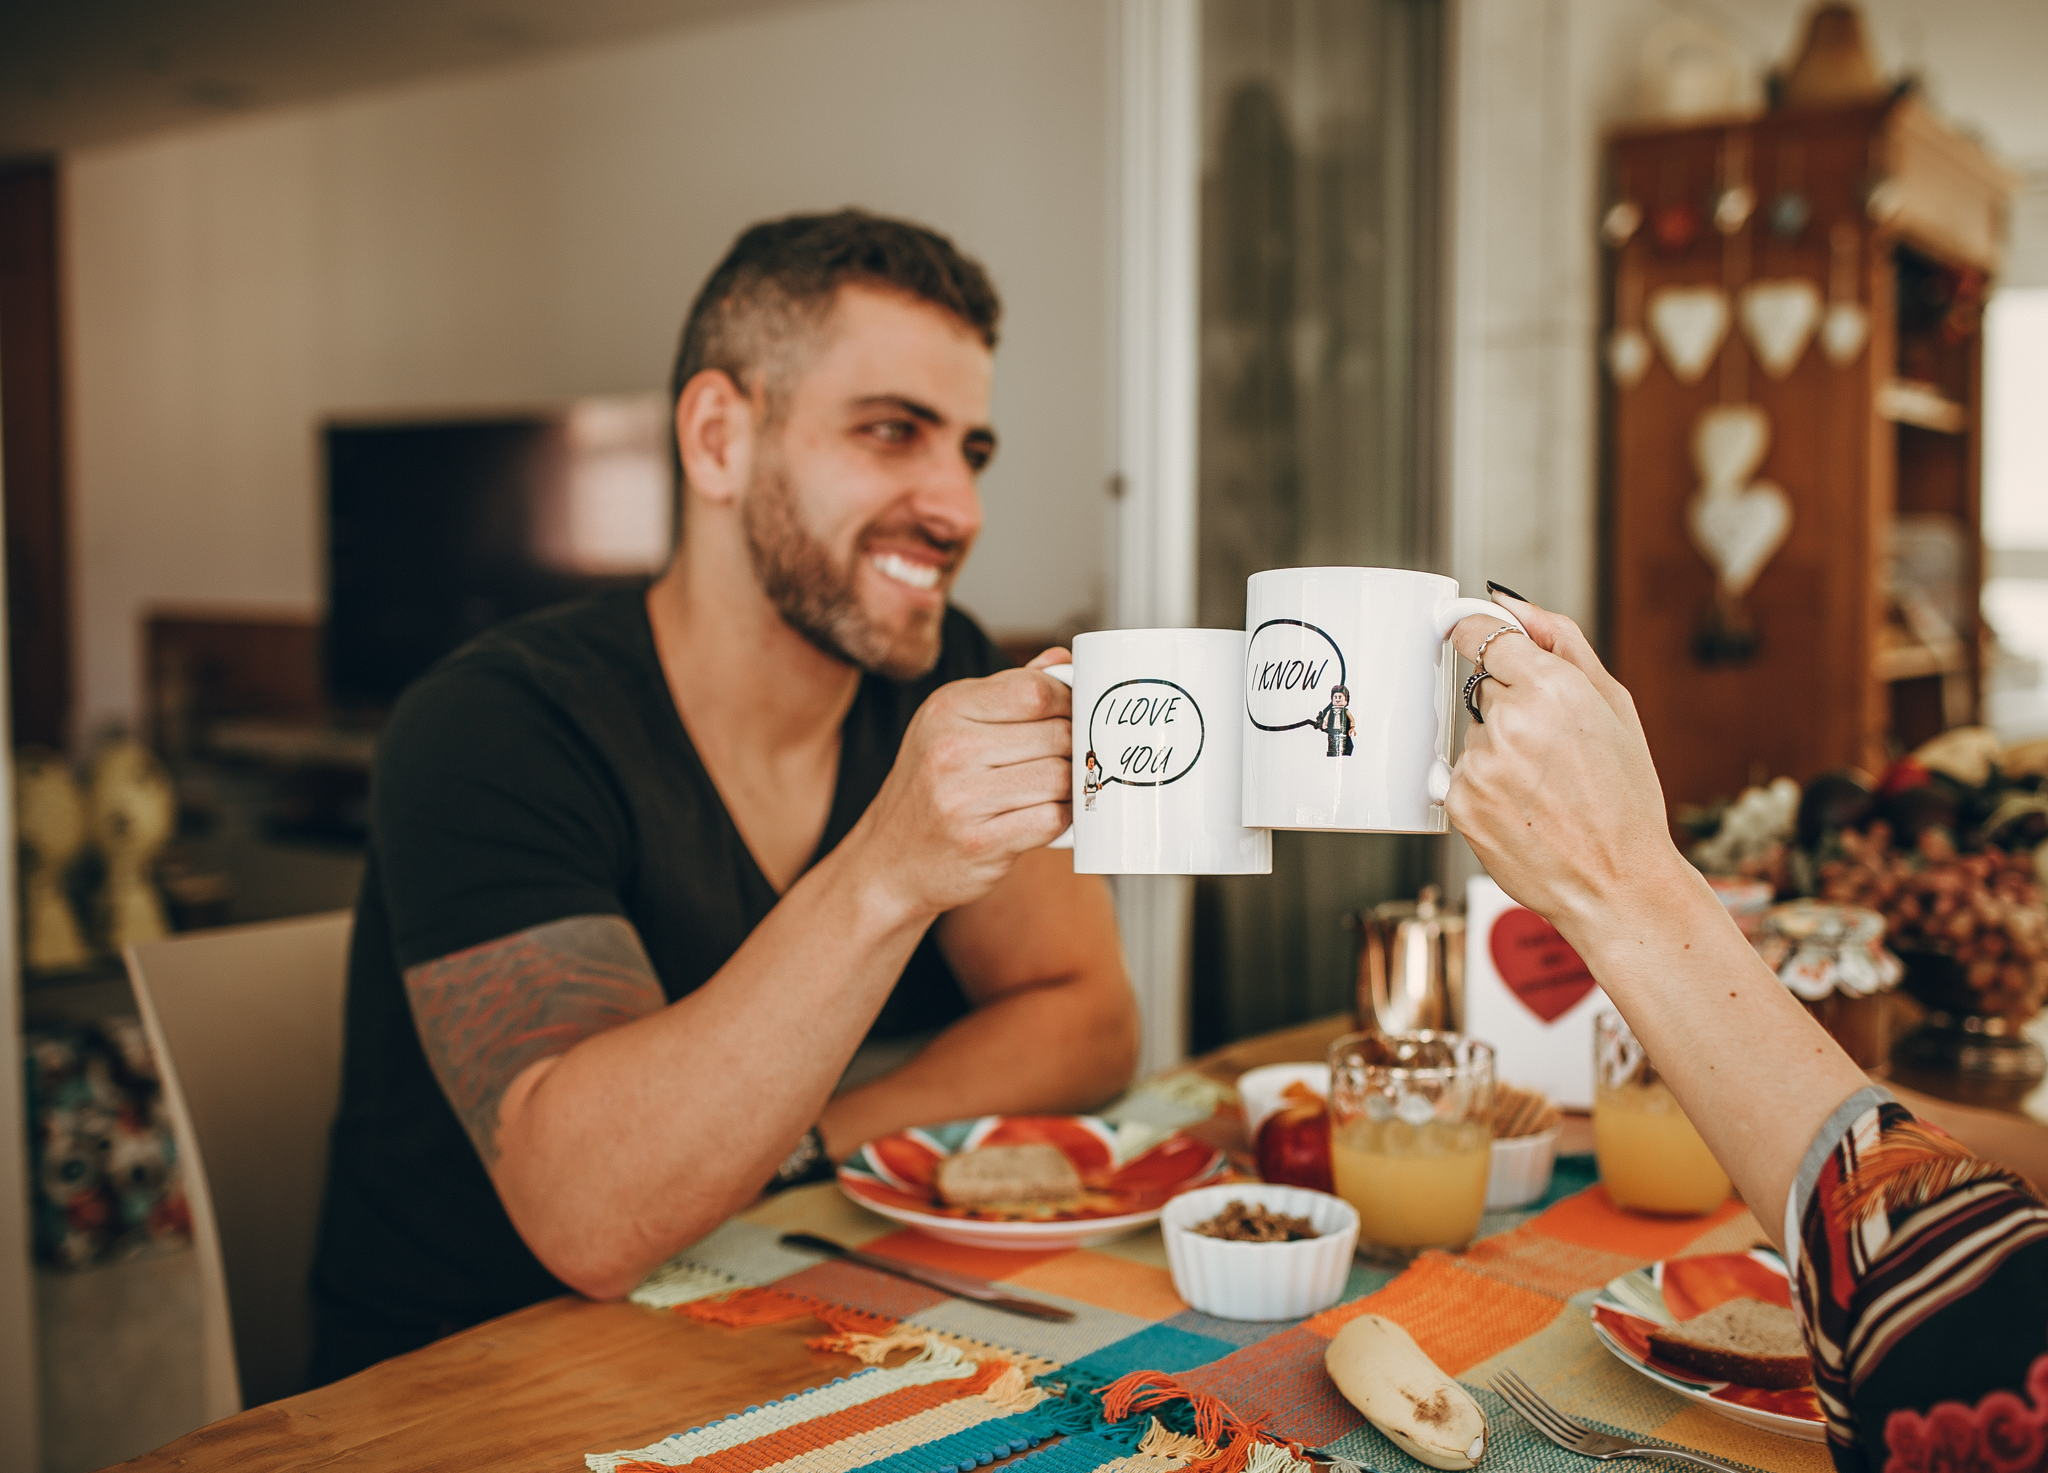 Image of an attractive man sitting with a woman out of frame having breakfast together. He is smiling and holding a white coffee mug up to the woman's coffee mug.